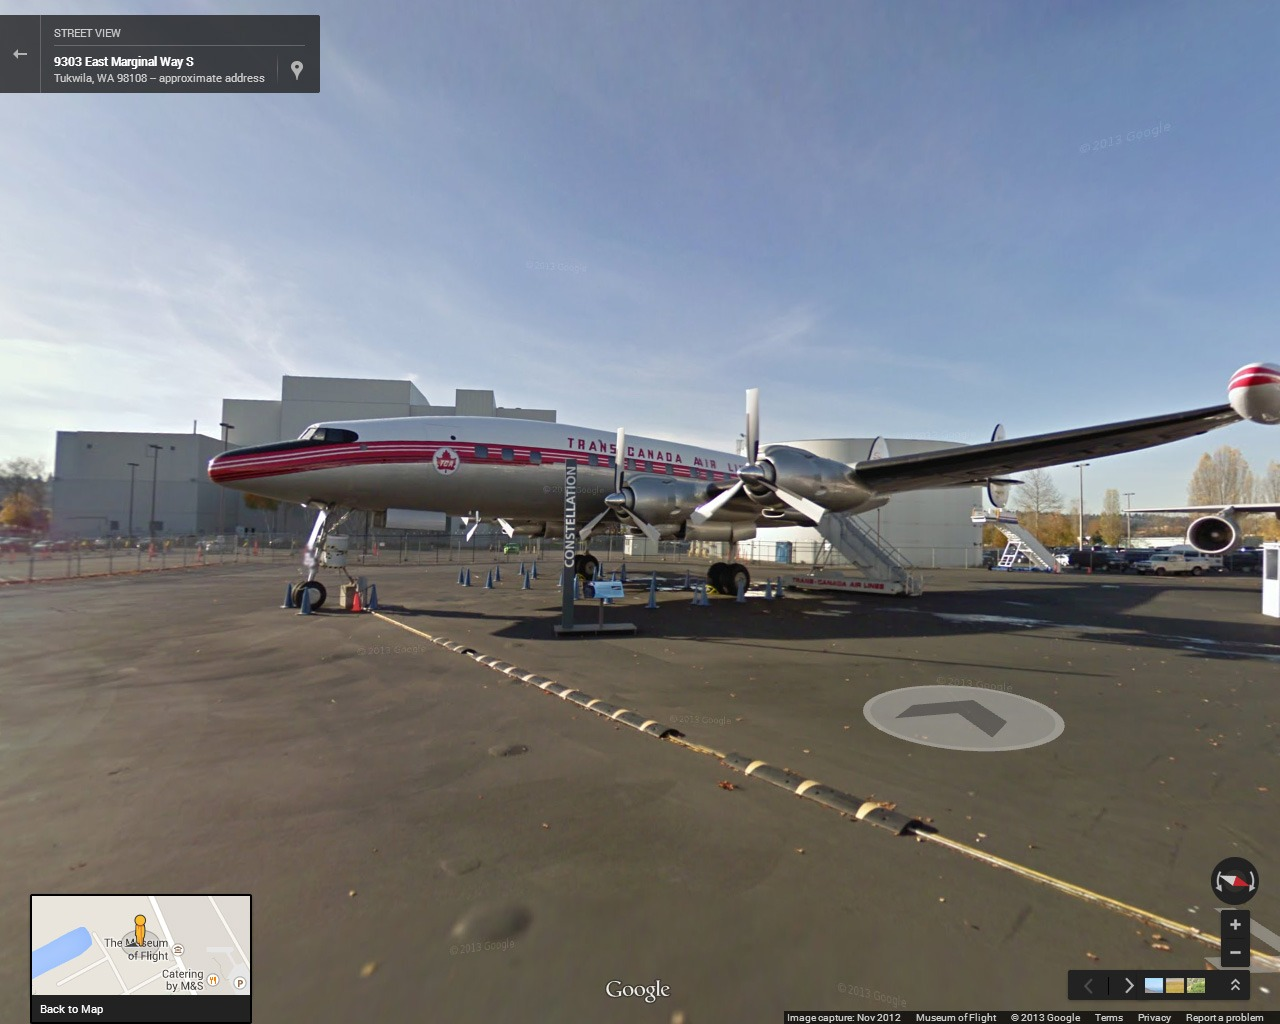 Google Street Map of the Museum of Flight in Seattle.